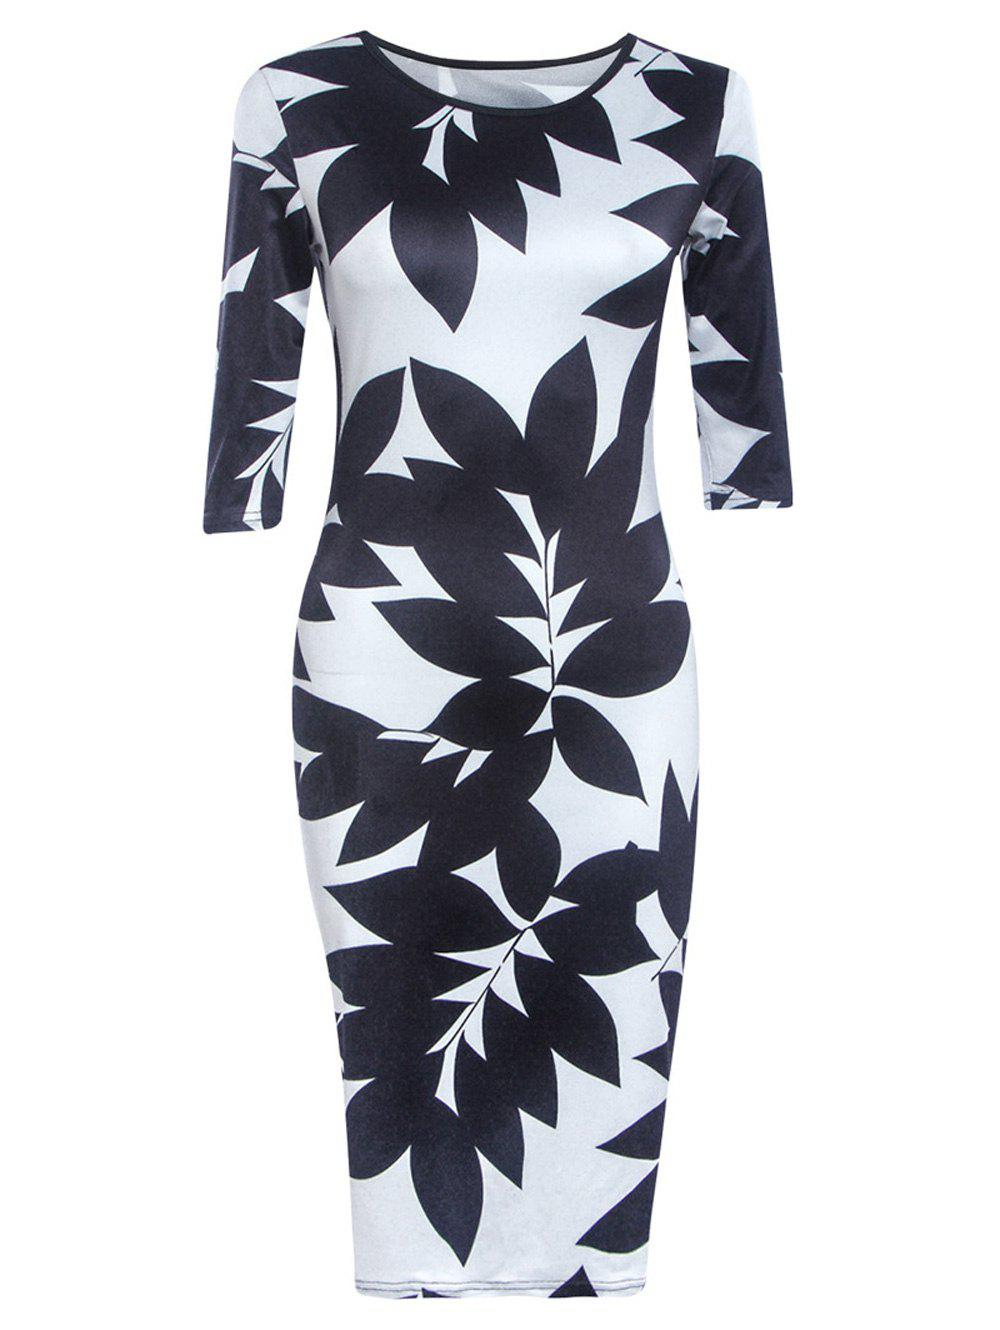 Chic Round Neck Half Sleeve Leaf Print Skinny Women's Dress - BLACK L